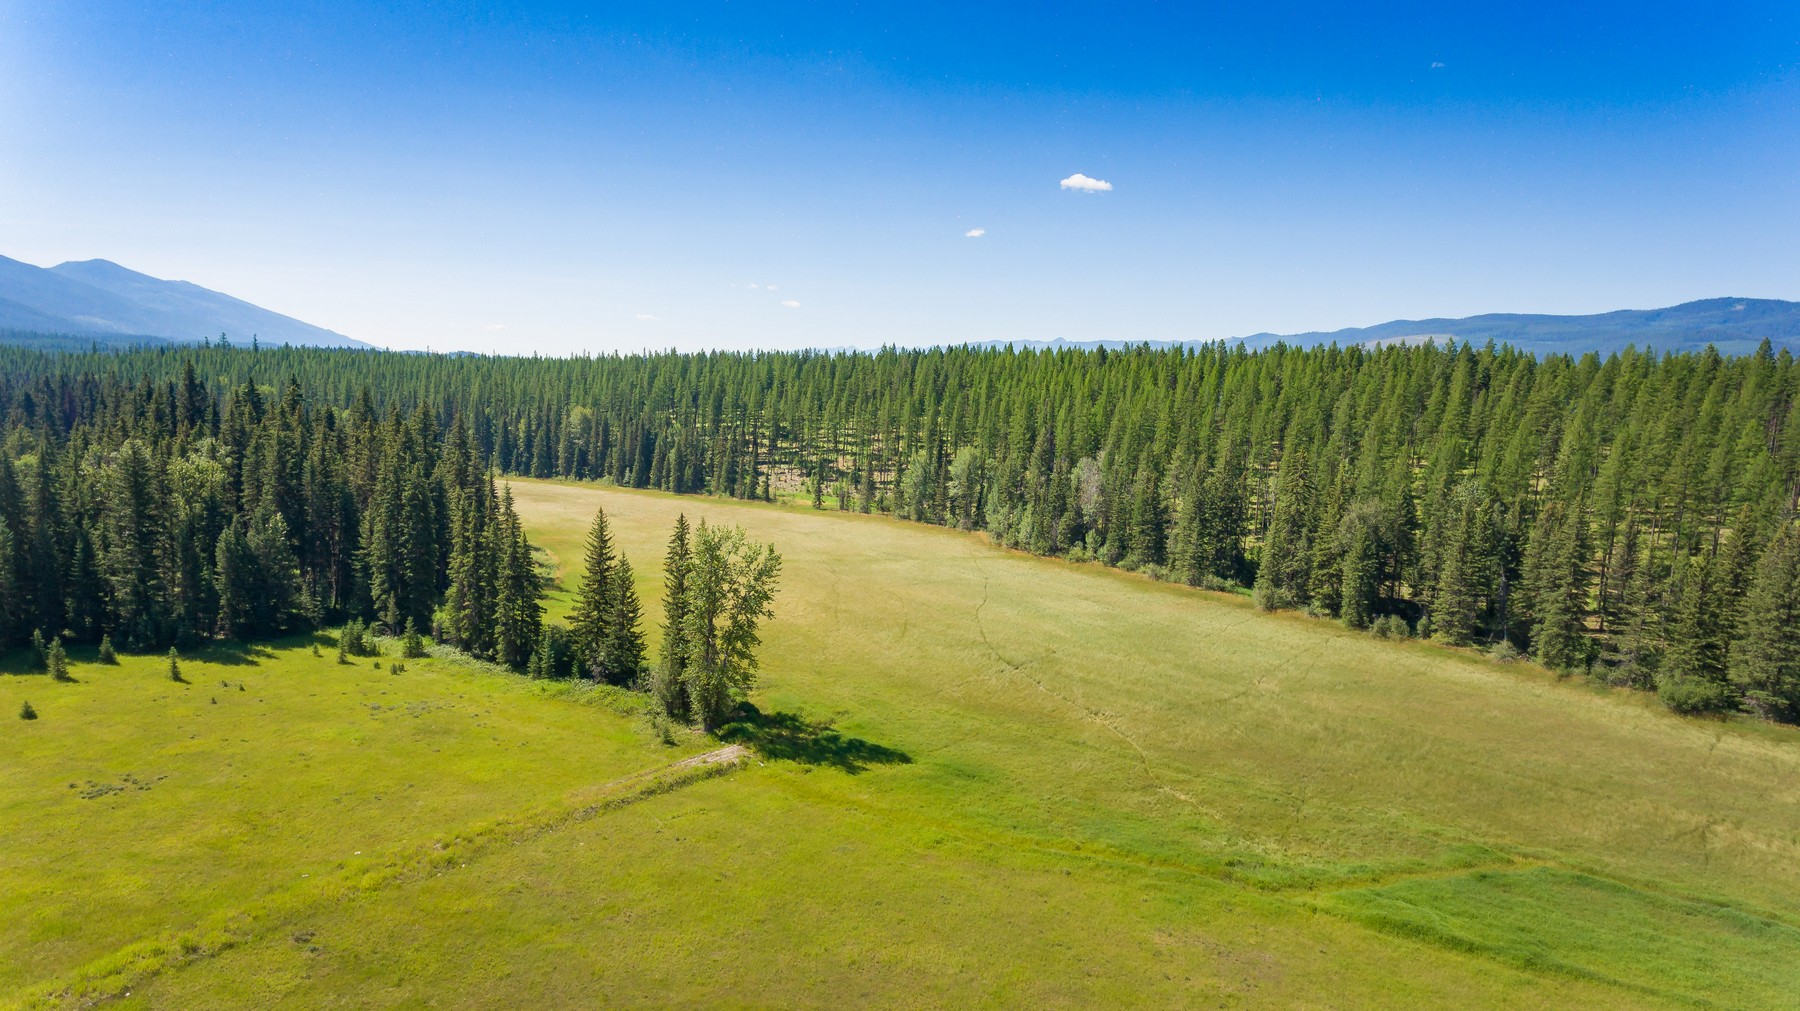 Additional photo for property listing at Nhn Lost Creek Road, 100 Acres, Swan Lake, MT 5991 Nhn  Lost Creek Rd 100 Acres Swan Lake, Montana 59911 United States